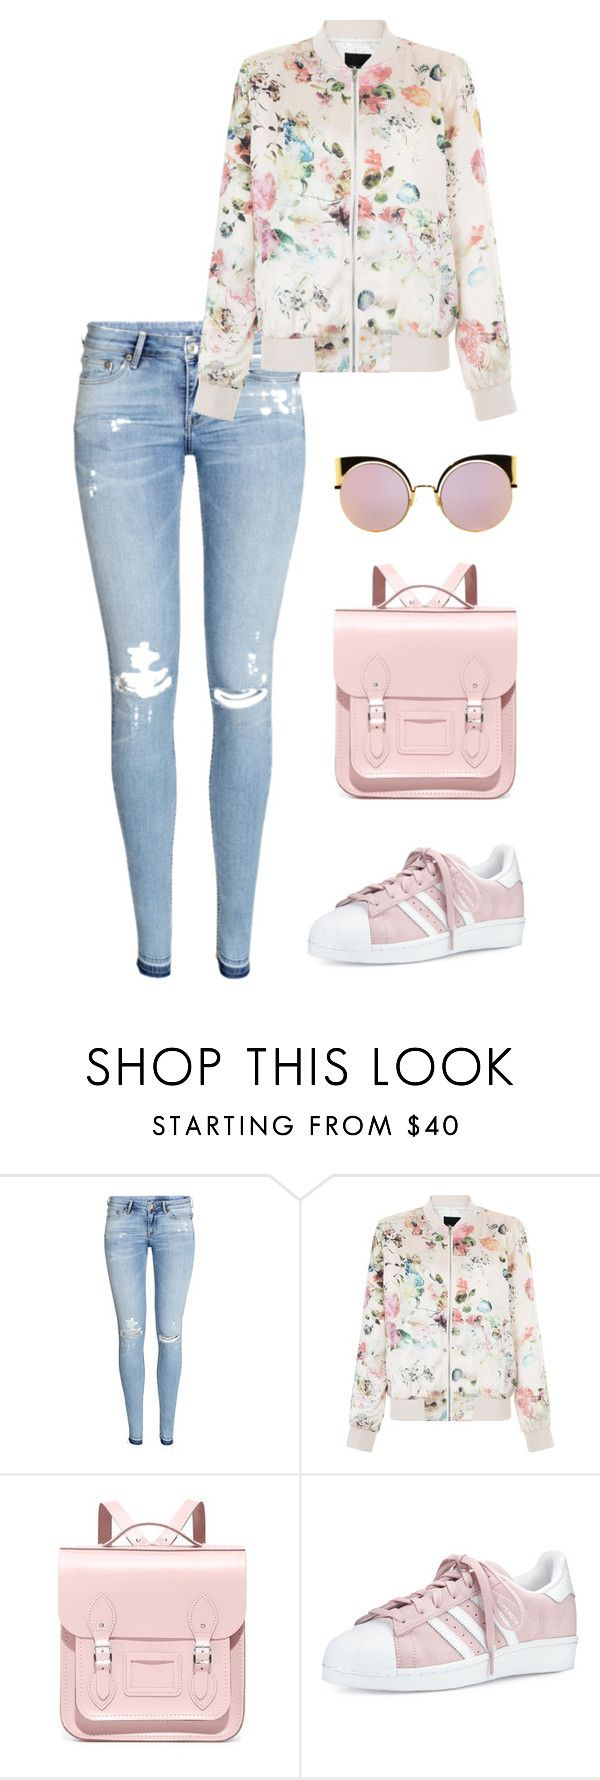 """Untitled #274"" by fofo-moon ❤ liked on Polyvore featuring H&M, New Look, The Cambridge Satchel Company, adidas and Fendi"